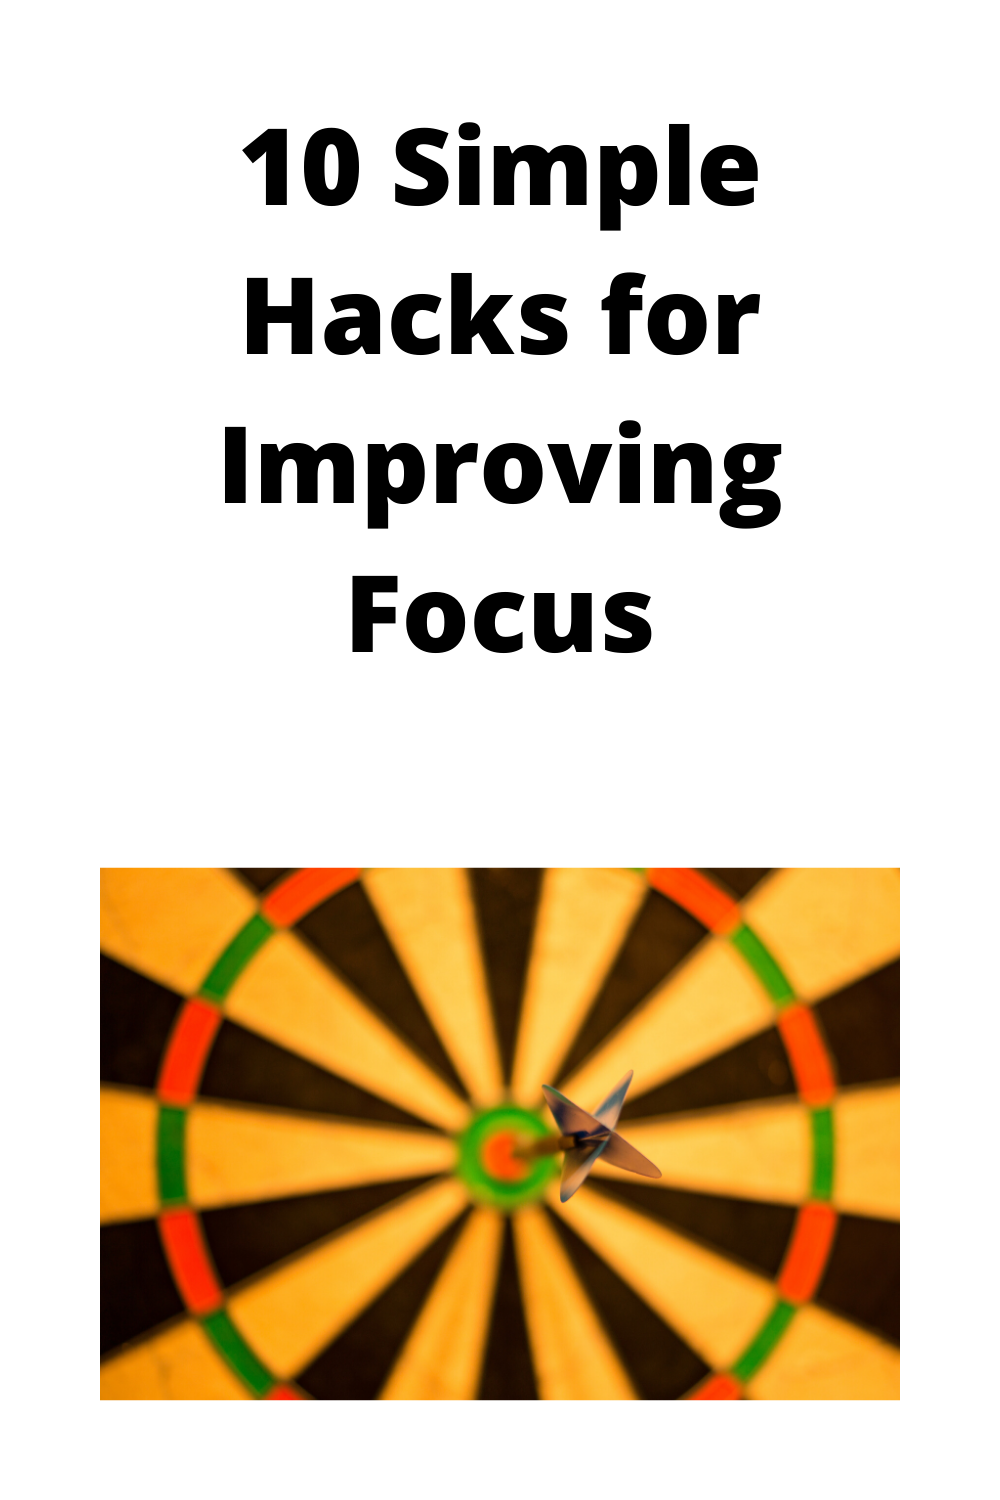 10 Simple Hacks for Improving Focus